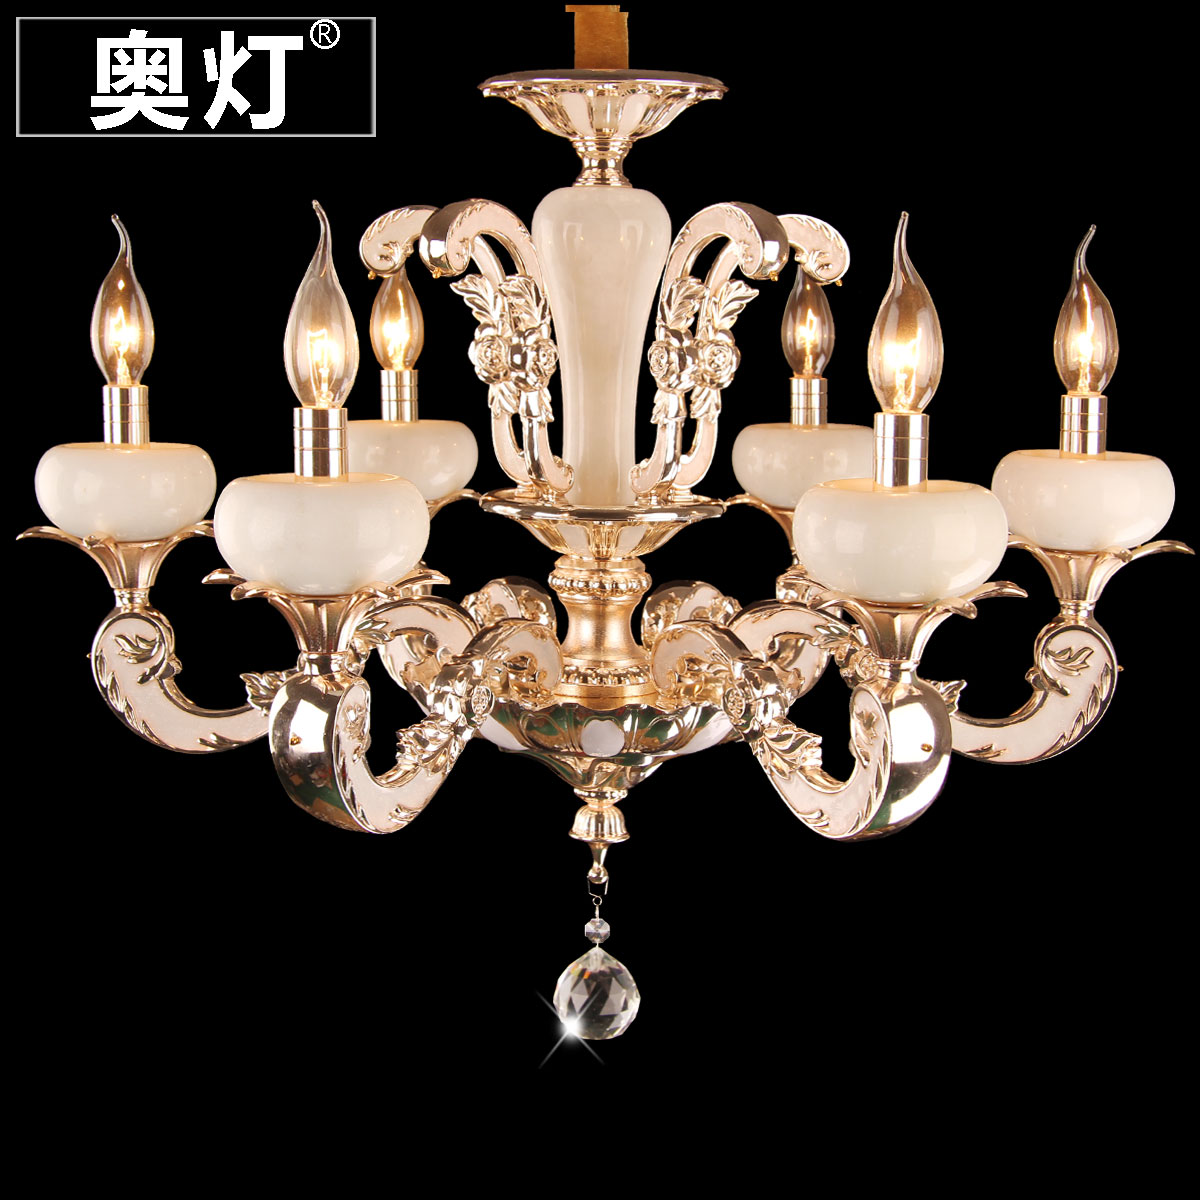 Austrian lamp zinc alloy candle chandelier crystal chandeliers bedroom living room dining drip droplight jade stone 8332